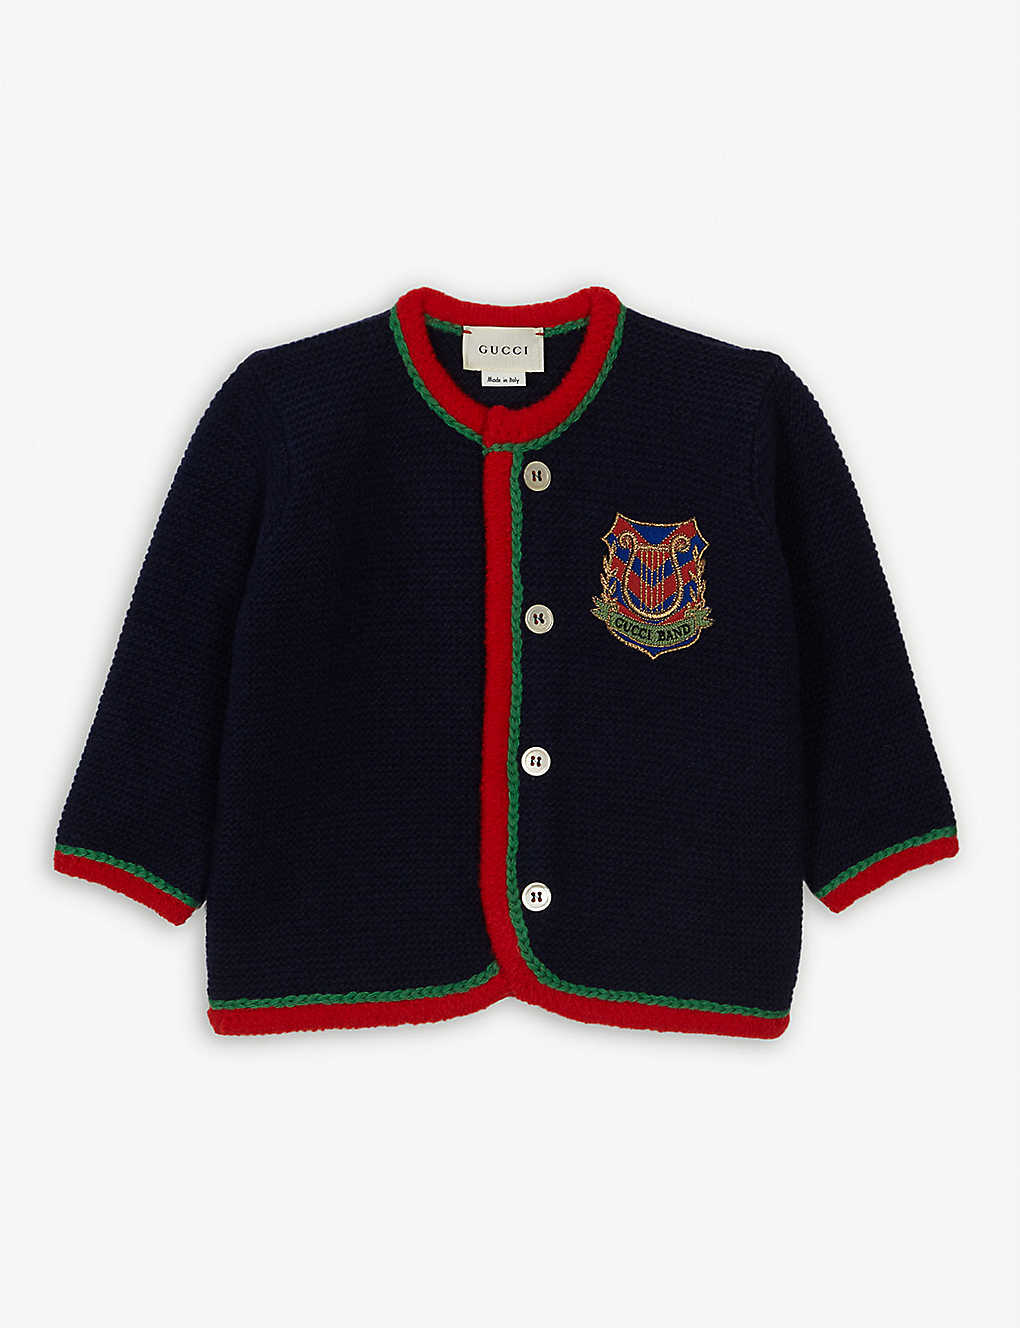 GUCCI: Gucci band wool cardigan 3-36 months